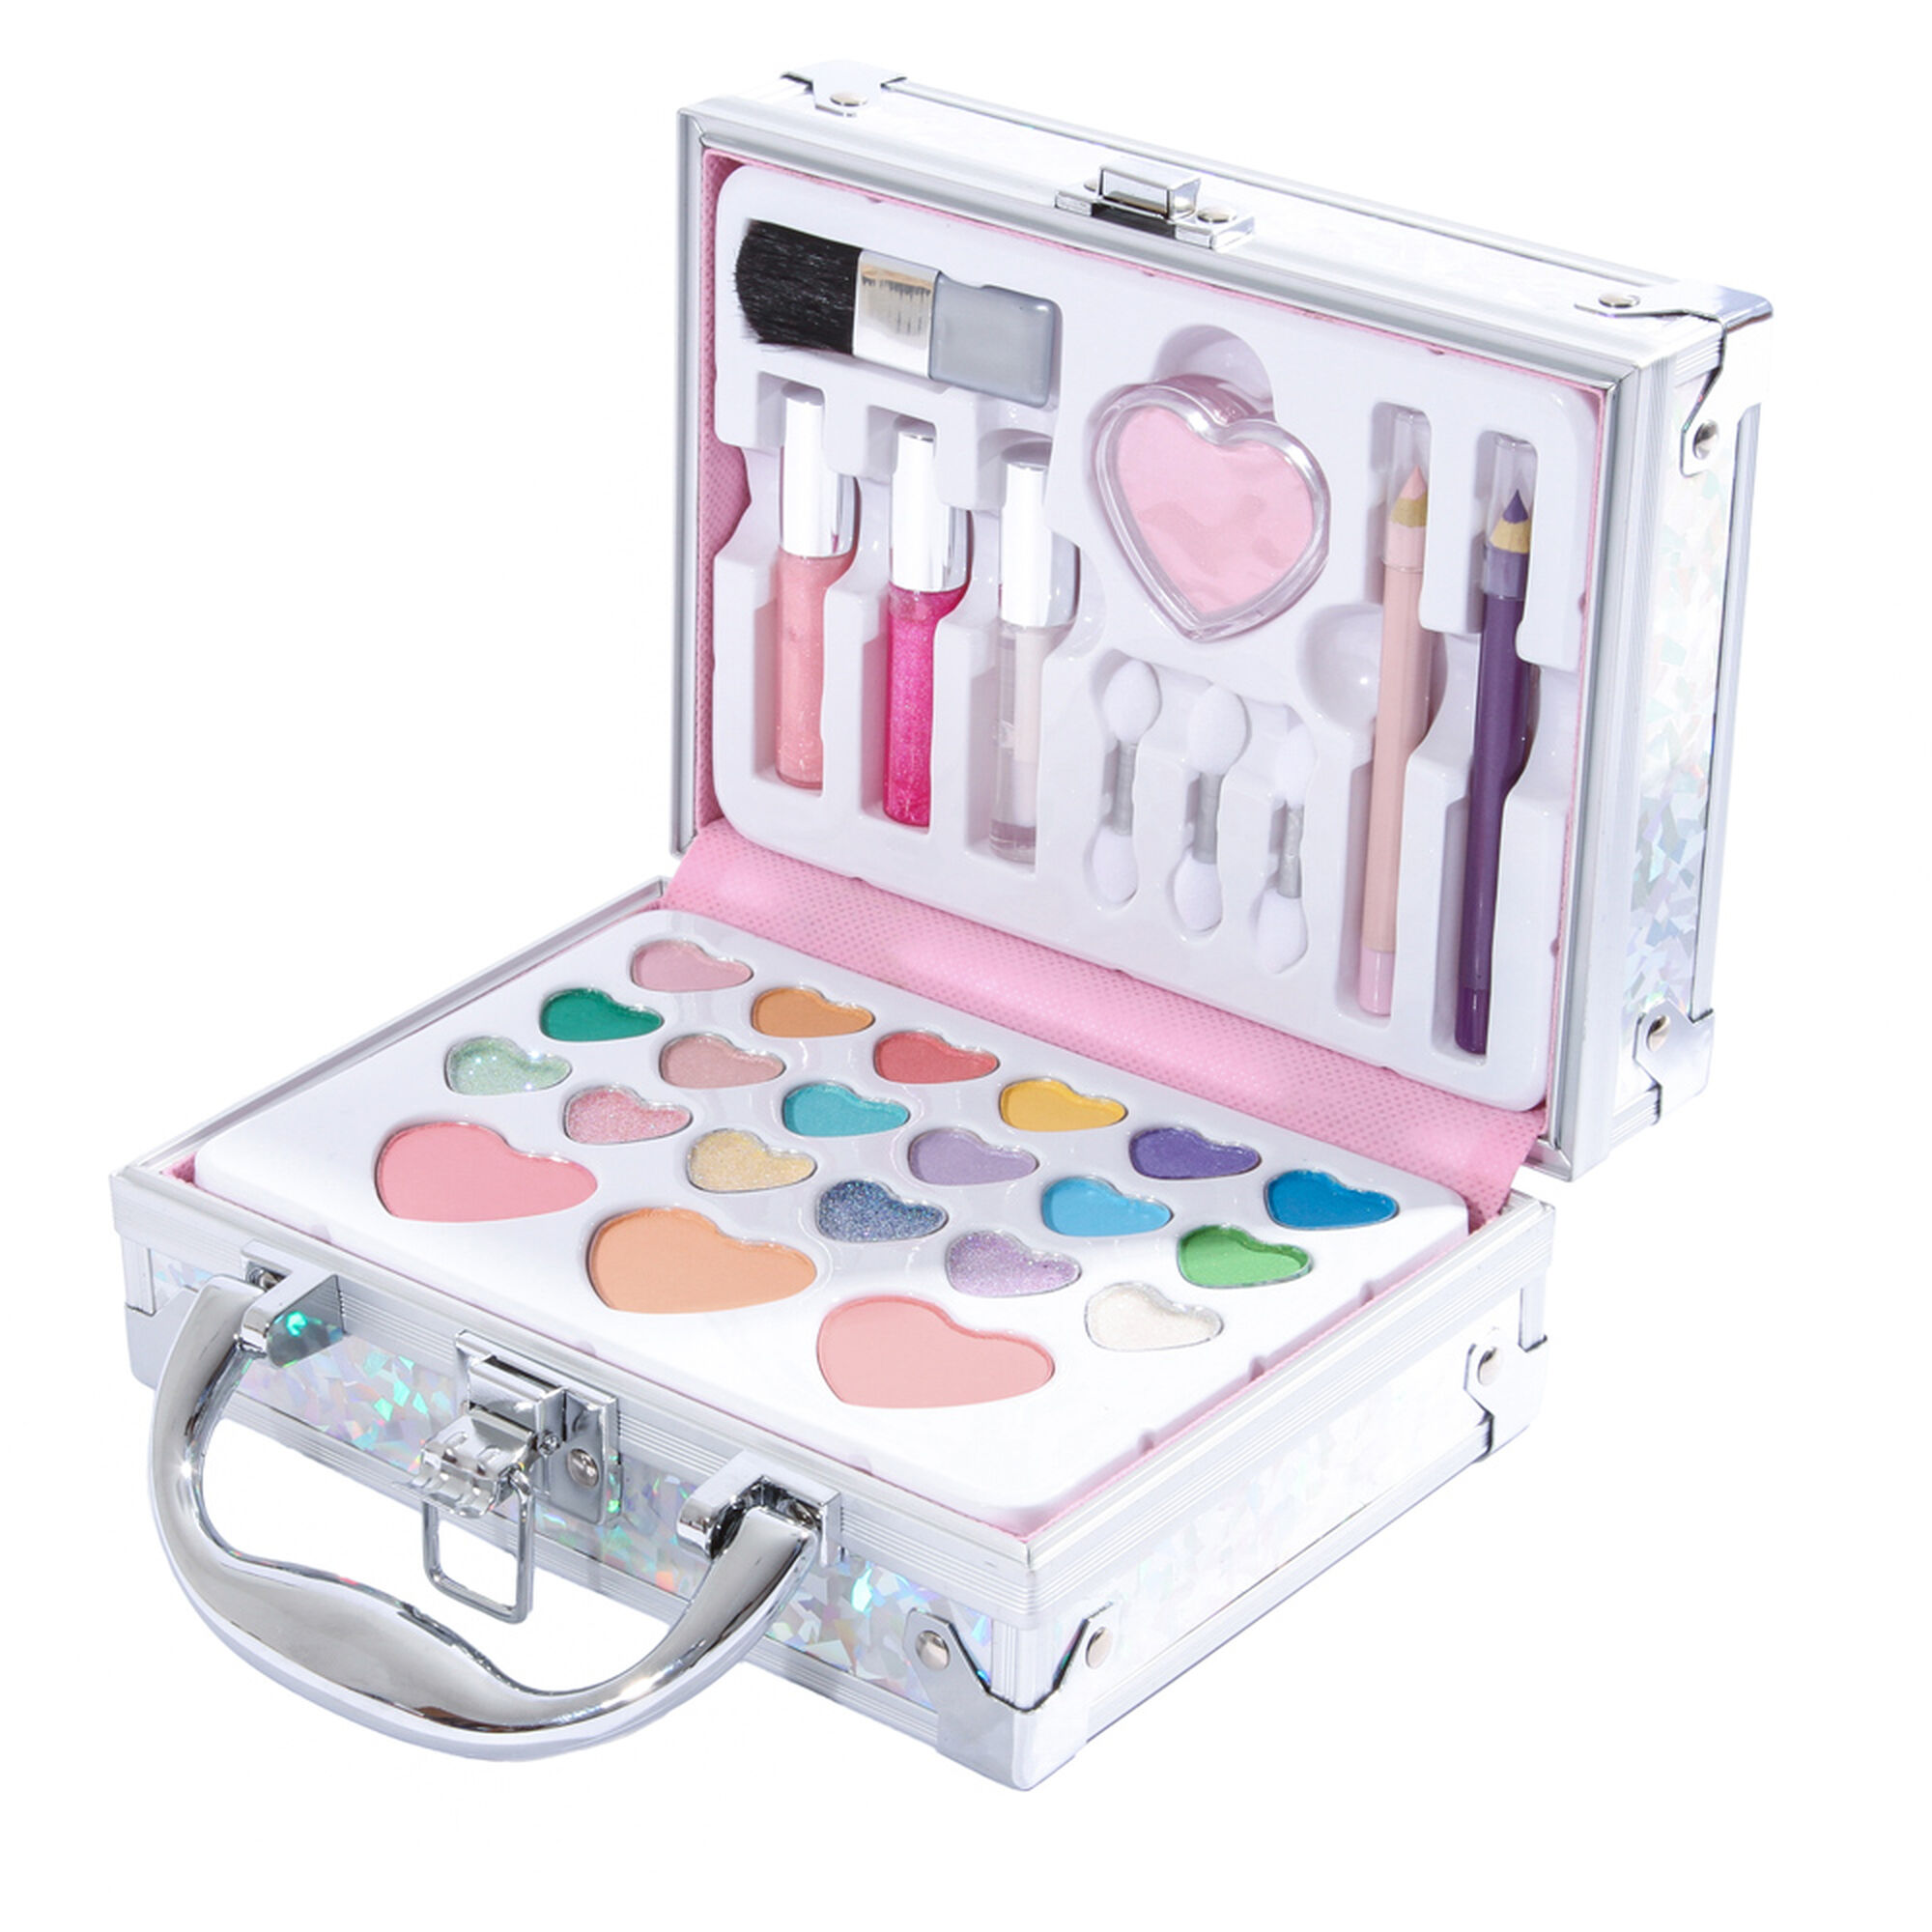 Search for rolling makeup case Preisvergleich, Testbericht und KaufberatungEnjoy big savings· 95% customer satisfaction· Huge SelectionGoods: Clothing and Accessories, Jewelry and Watches, Sunglasses and Eyewear.